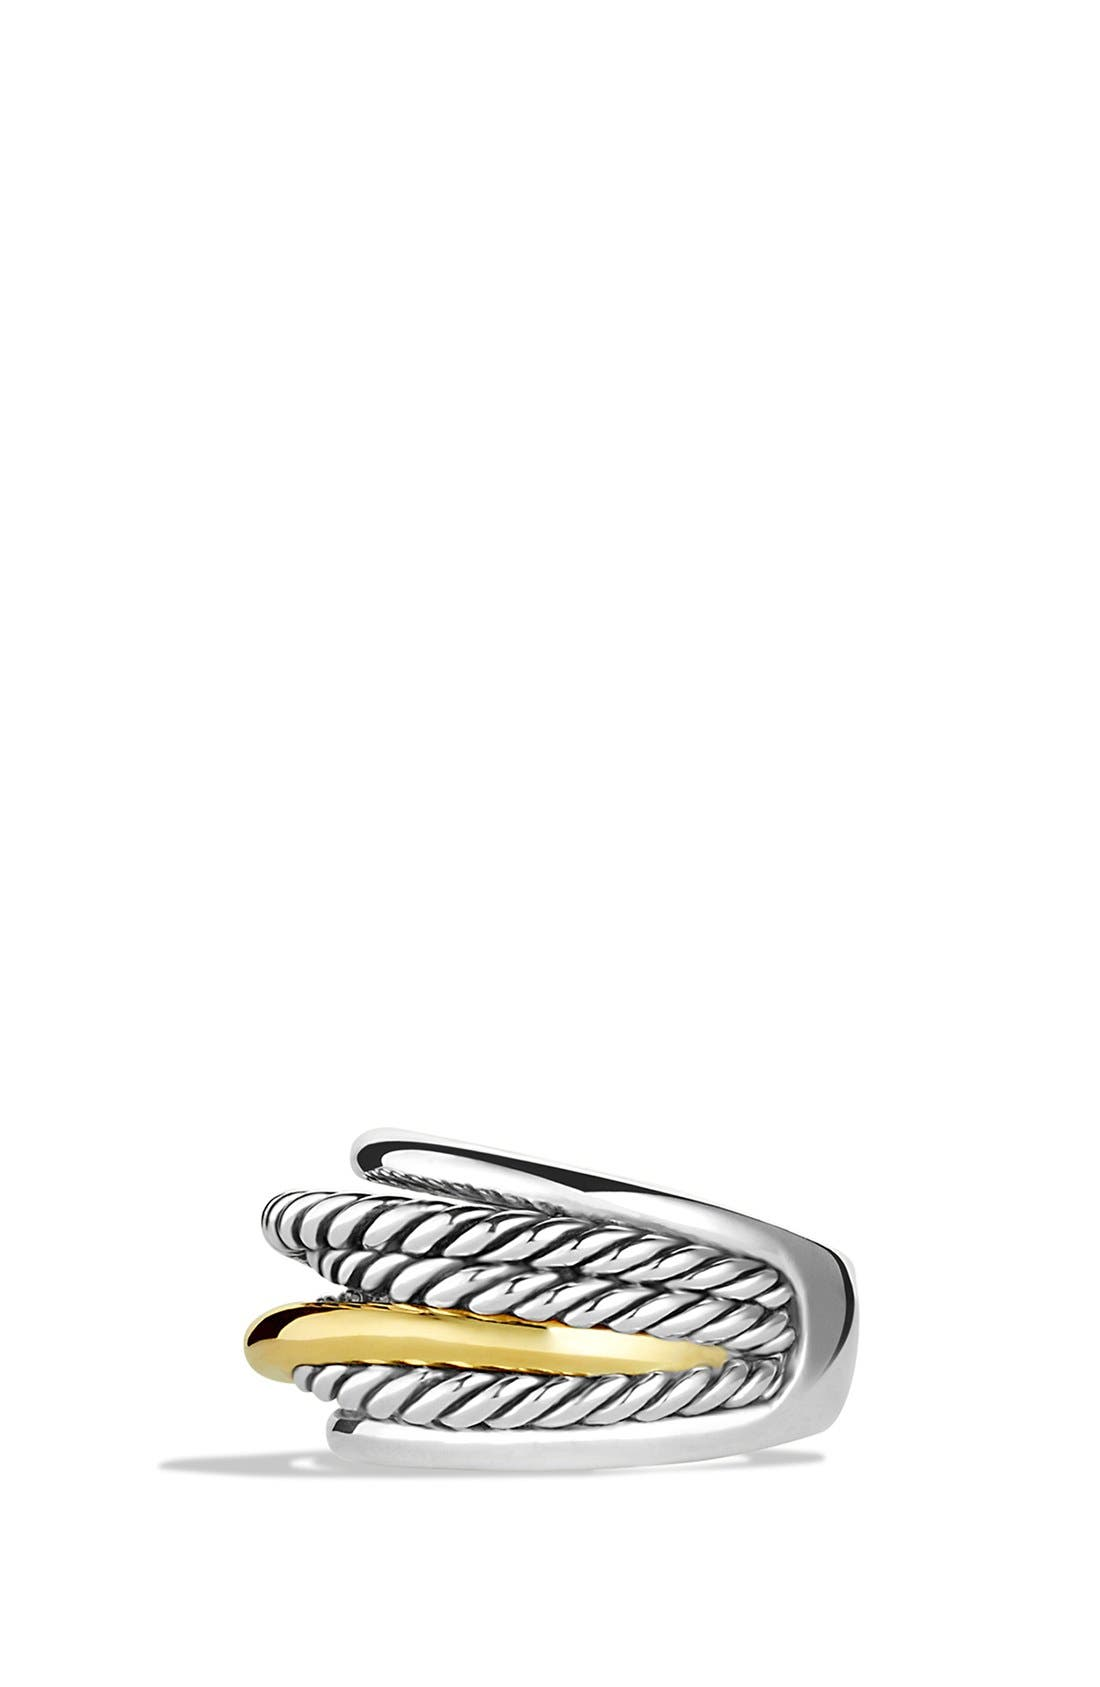 'Crossover' Narrow Ring with Gold,                             Alternate thumbnail 3, color,                             STERLING SILVER/ 14K GOLD